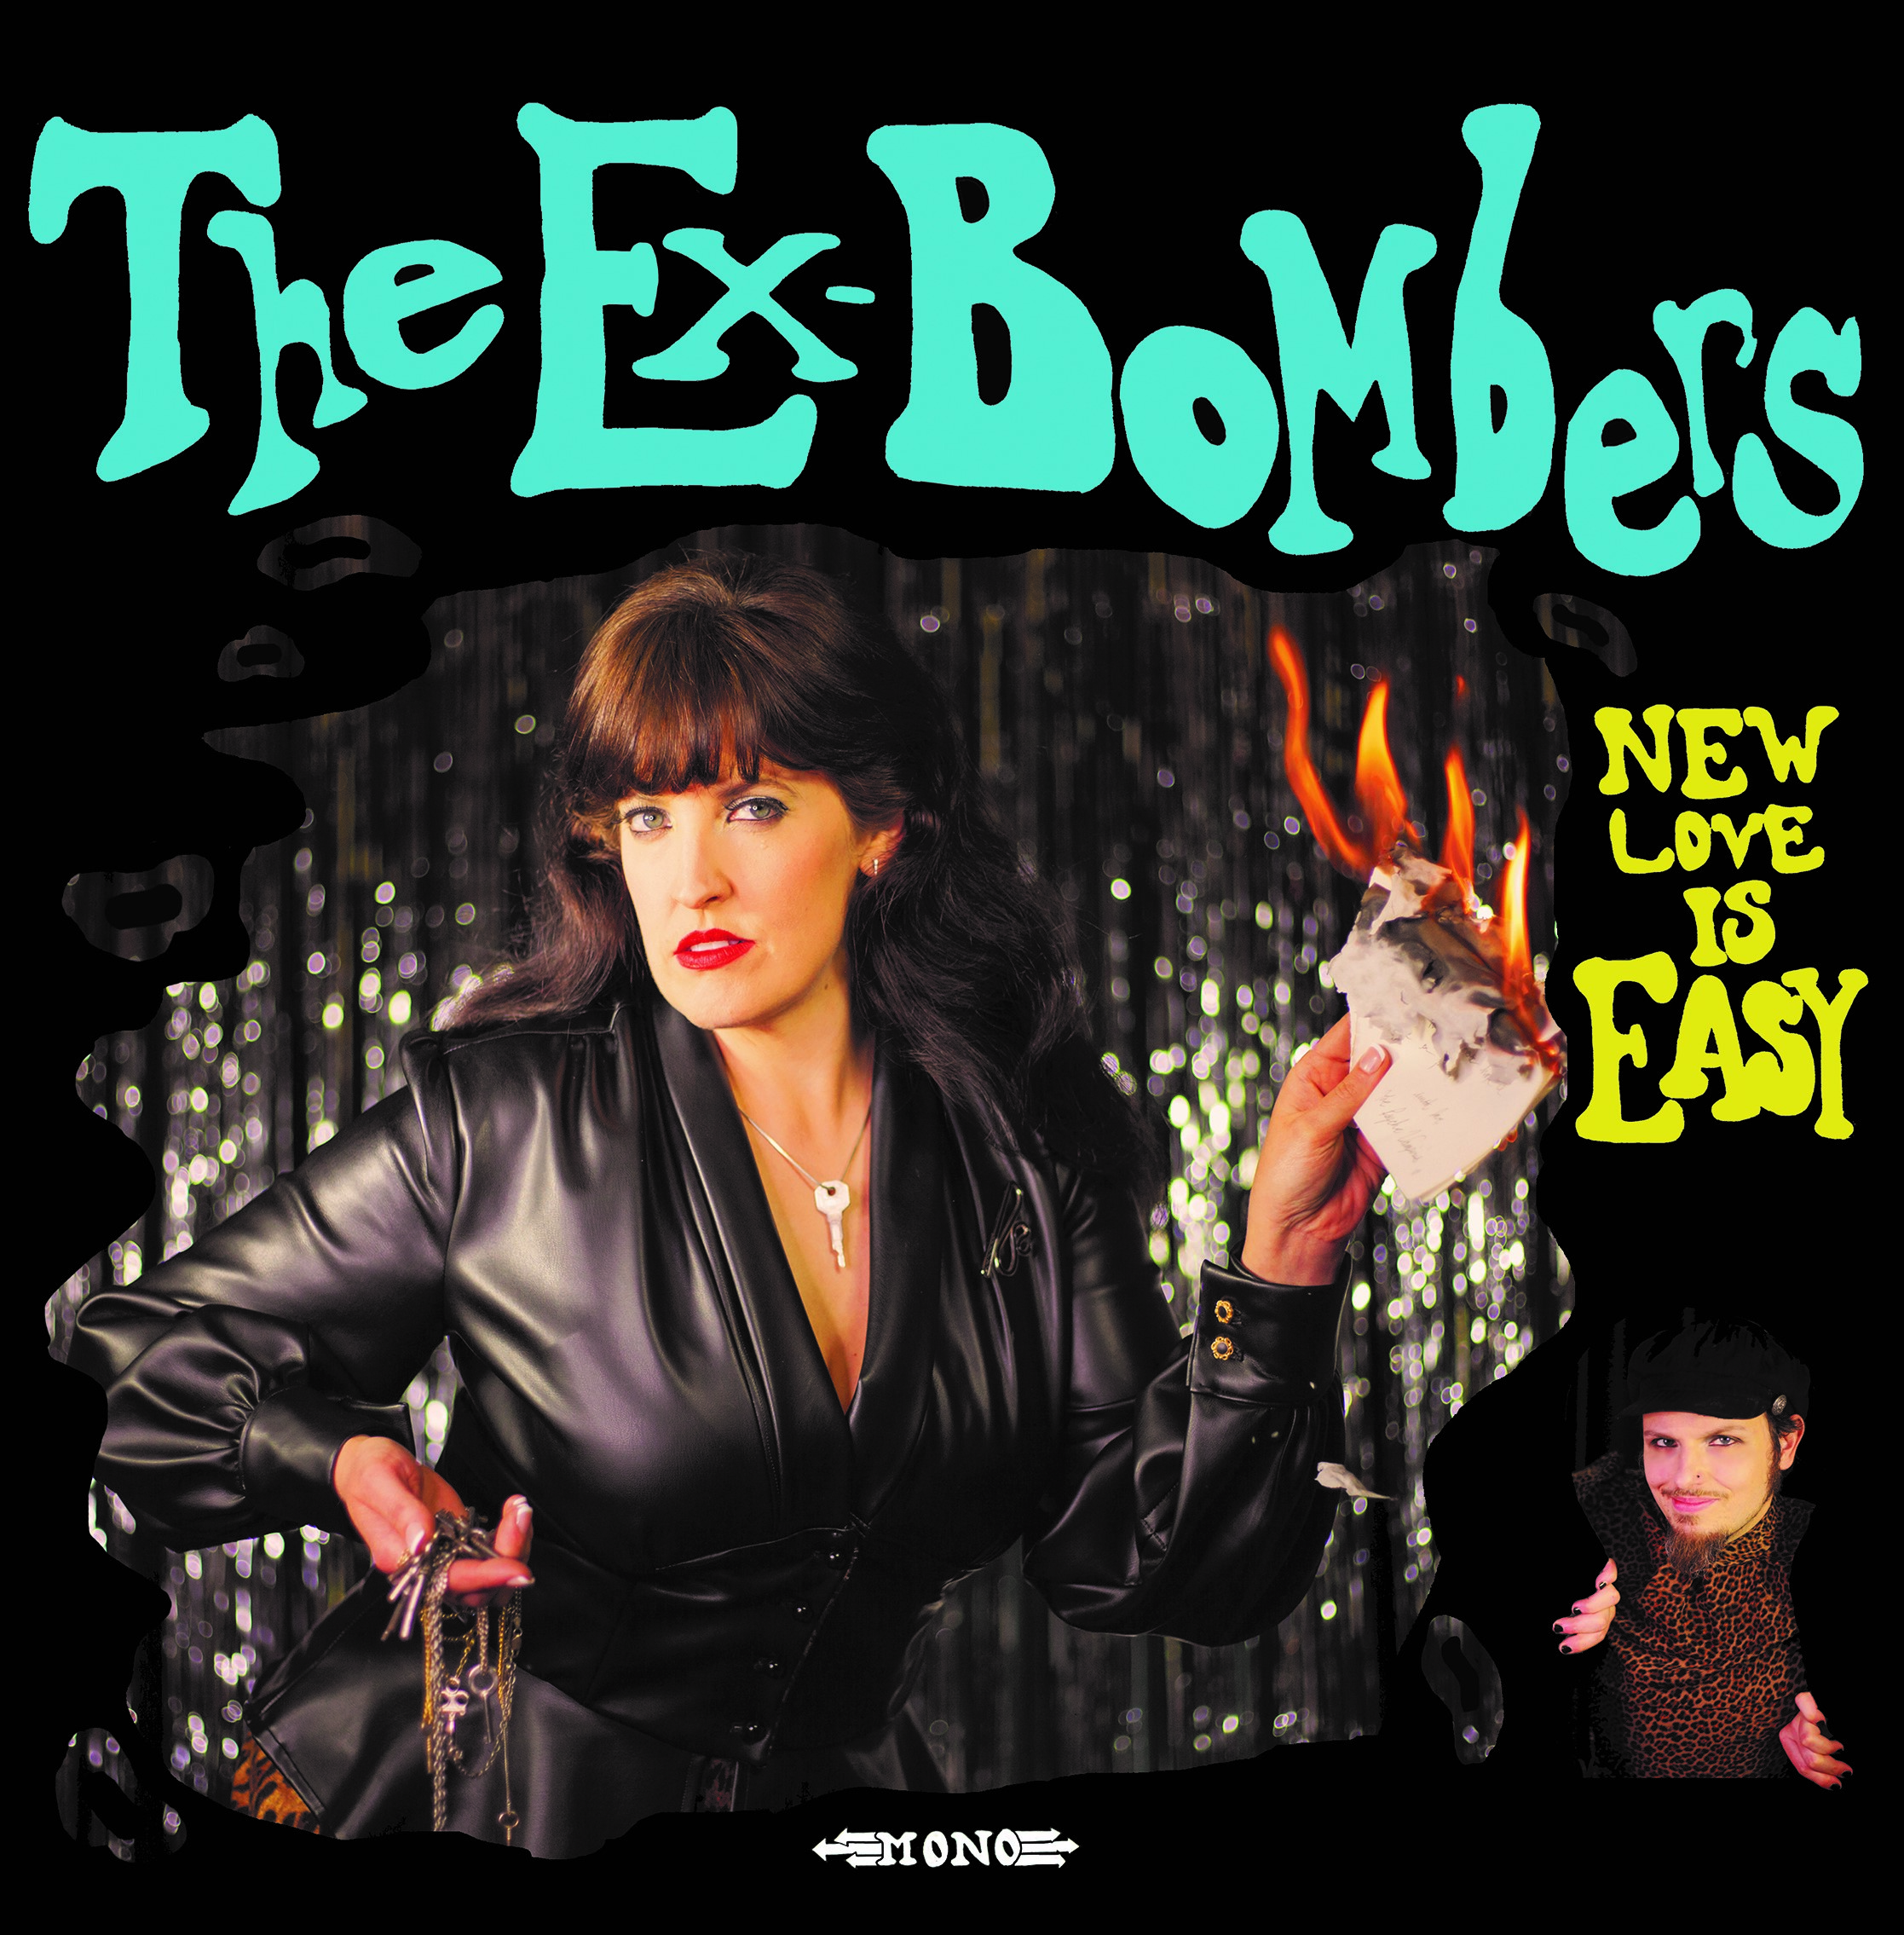 TheEx-Bombers - New Love is Easy